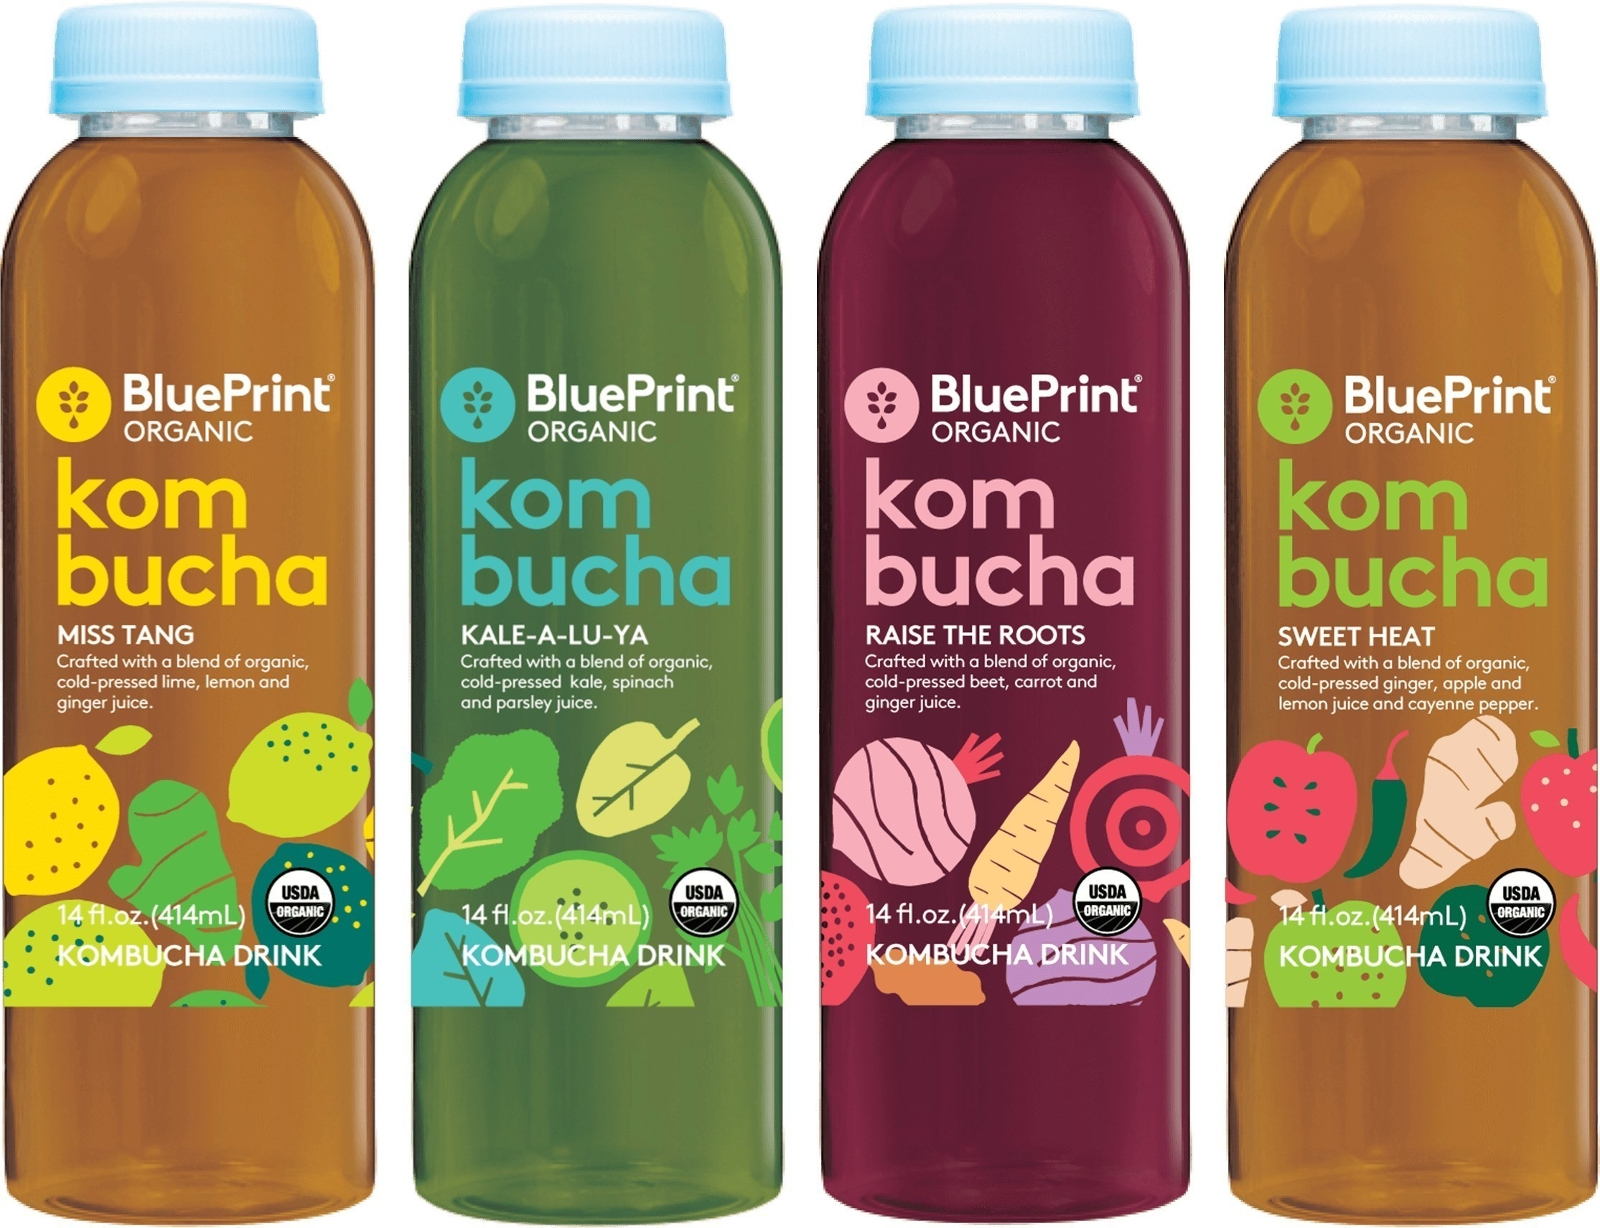 Blueprint organic launches new kombucha drinks malvernweather Image collections